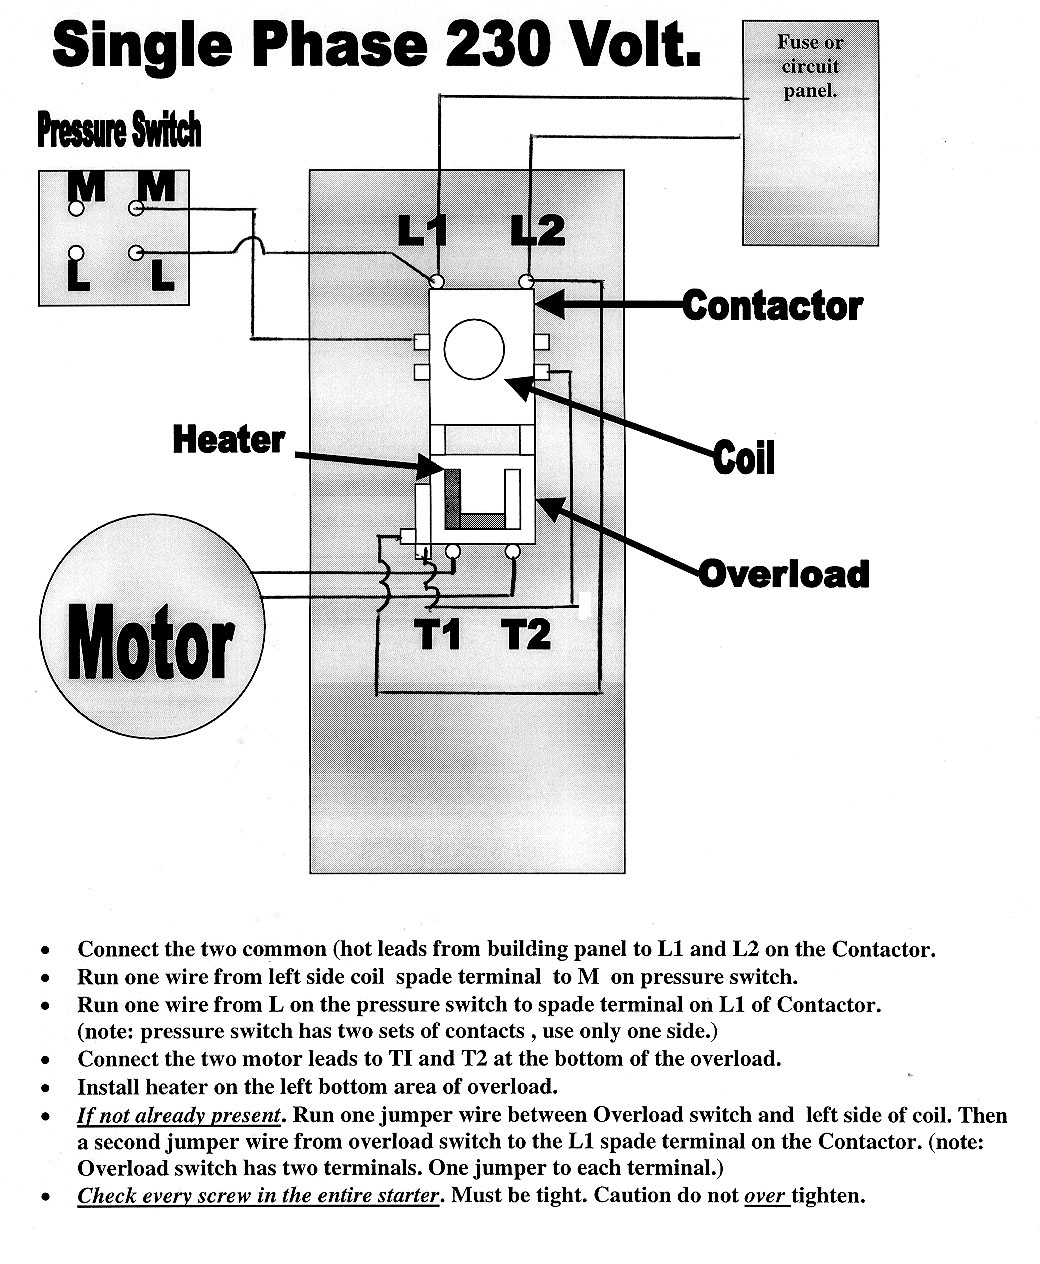 Single Phase Compressor Wiring Diagram - Wiring Diagram Explained - Compressor Wiring Diagram Single Phase